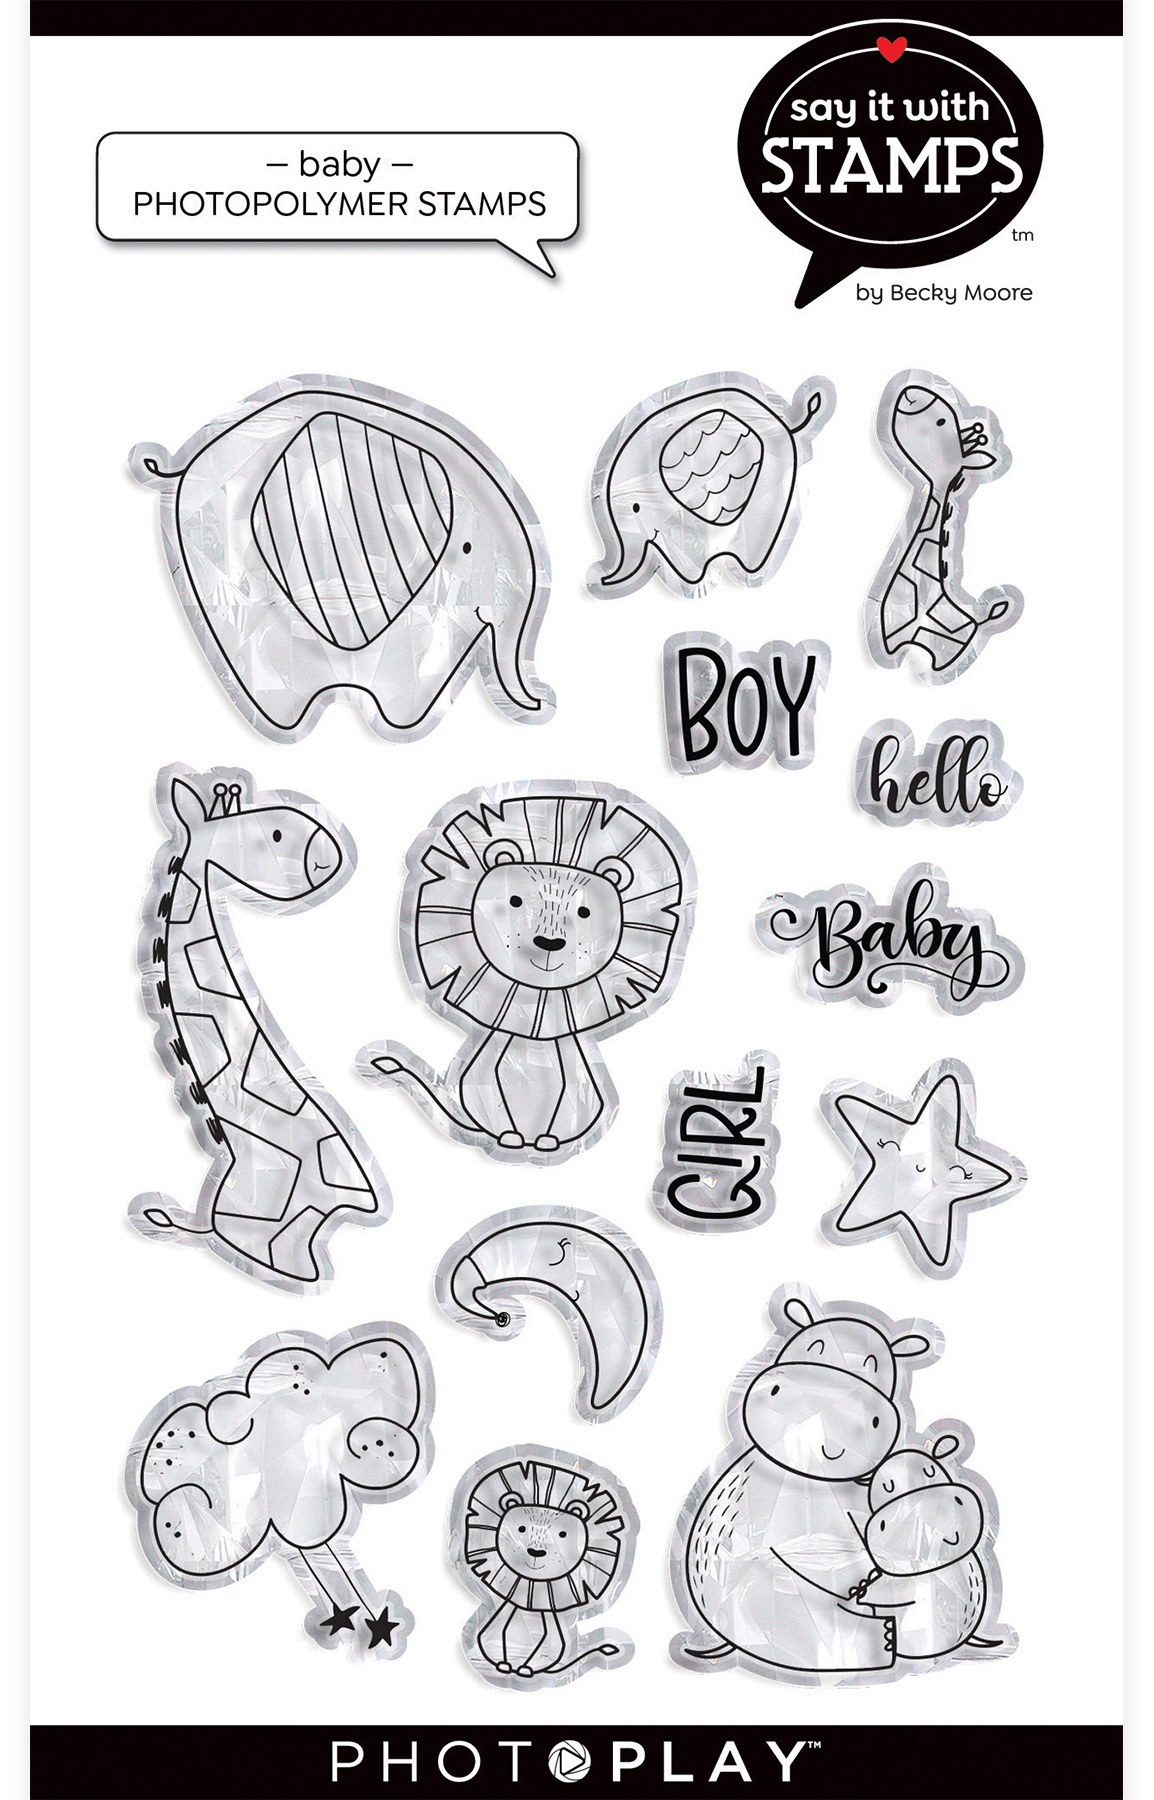 PhotoPlay Say It With Stamps Photopolymer Stamps-Baby Hugs & Kisses